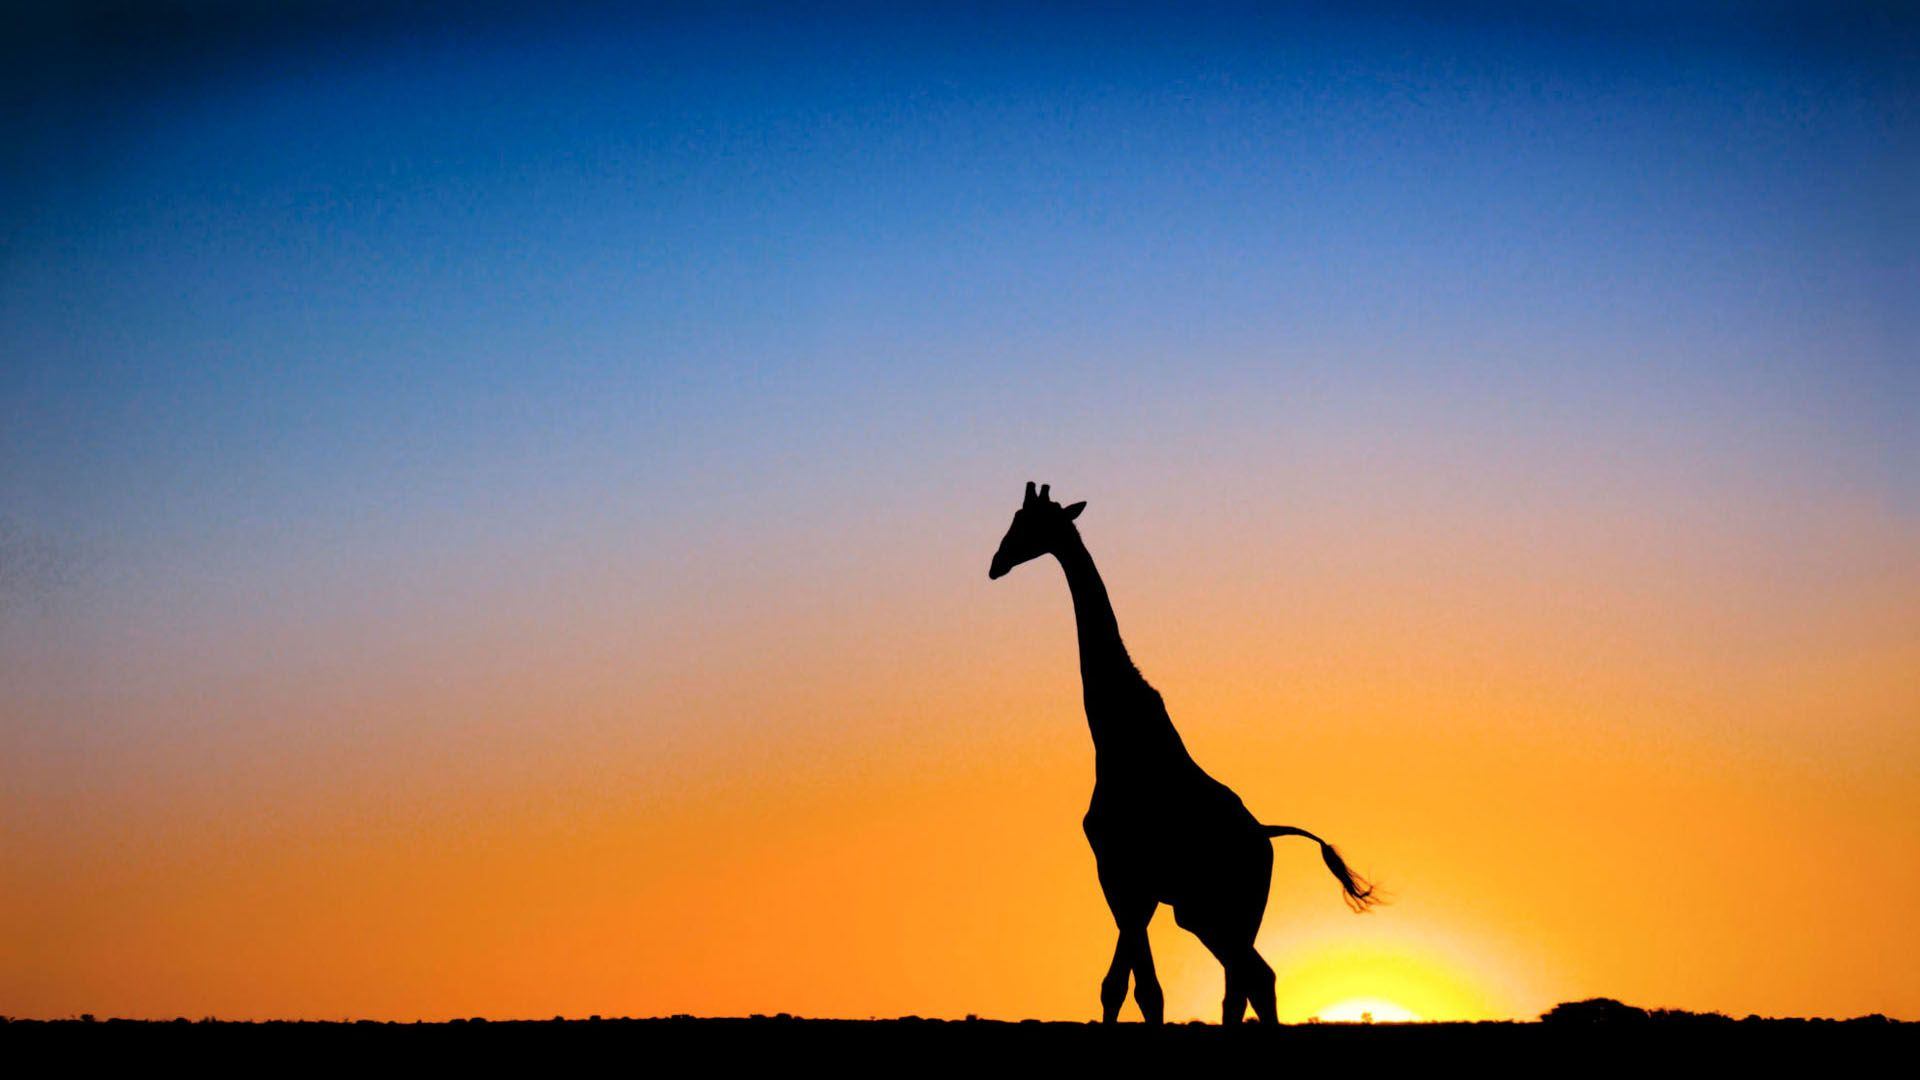 Sunset Giraffe Botswana 1080p HD Wallpaper Nature Life 1920x1080